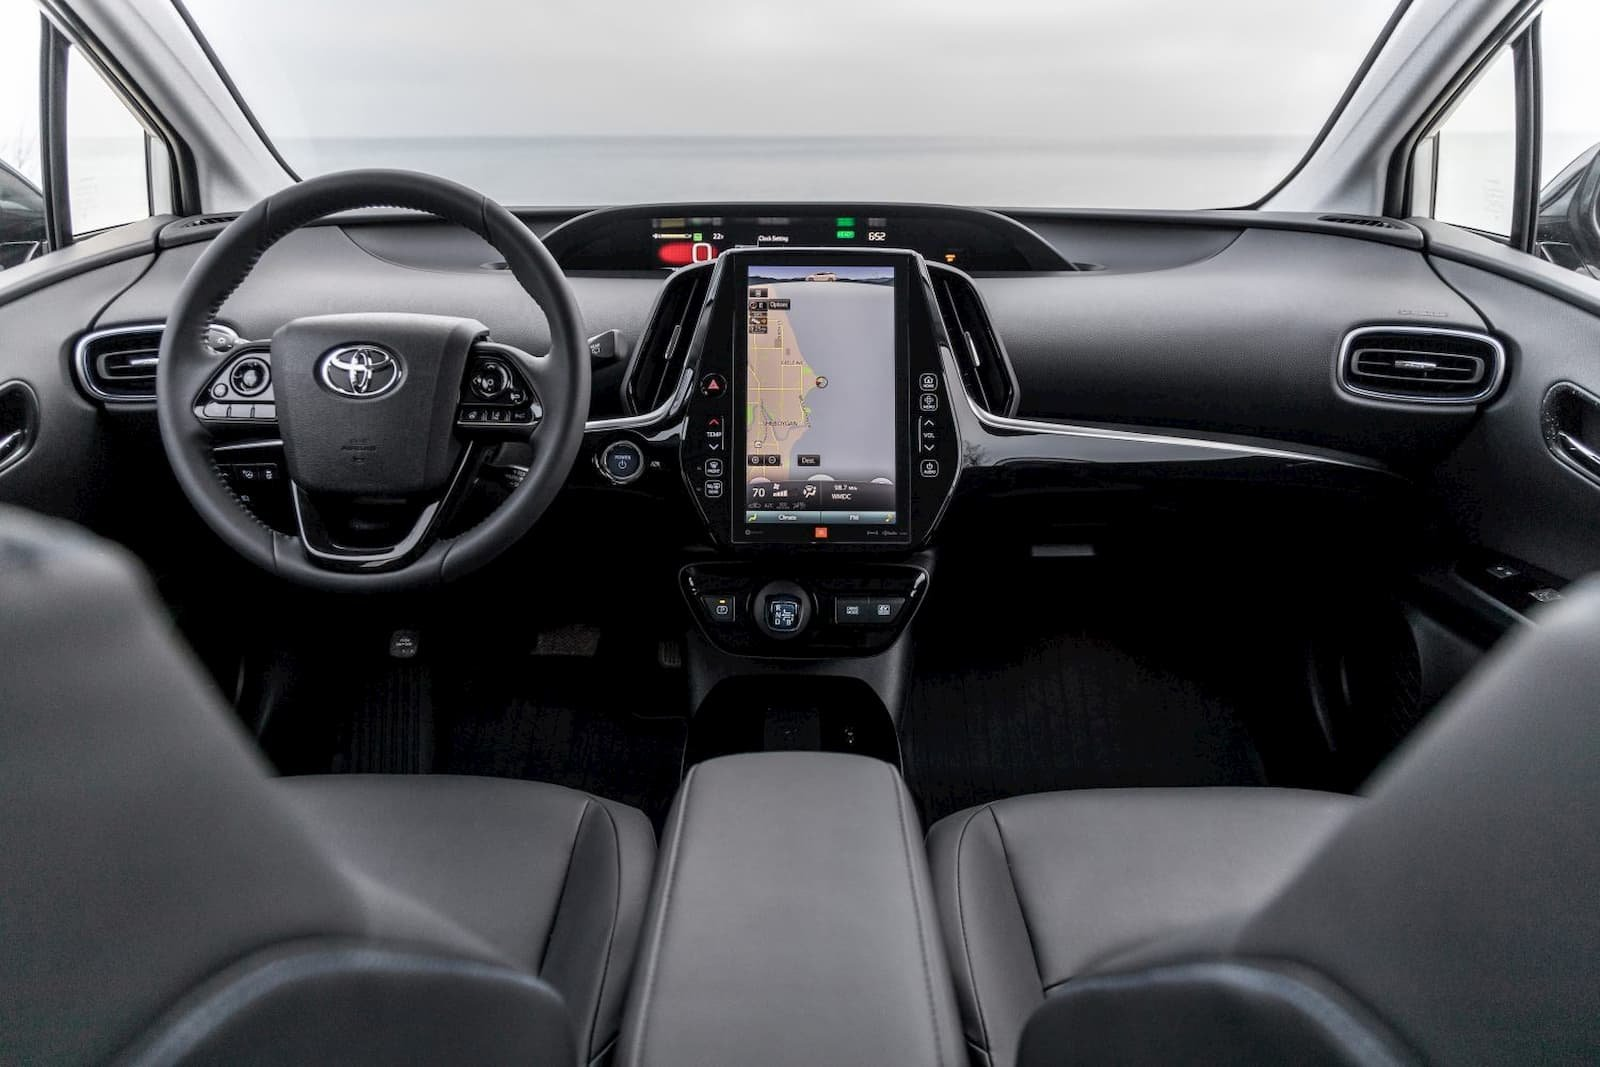 2020 Toyota Prius finally gets standard Apple CarPlay